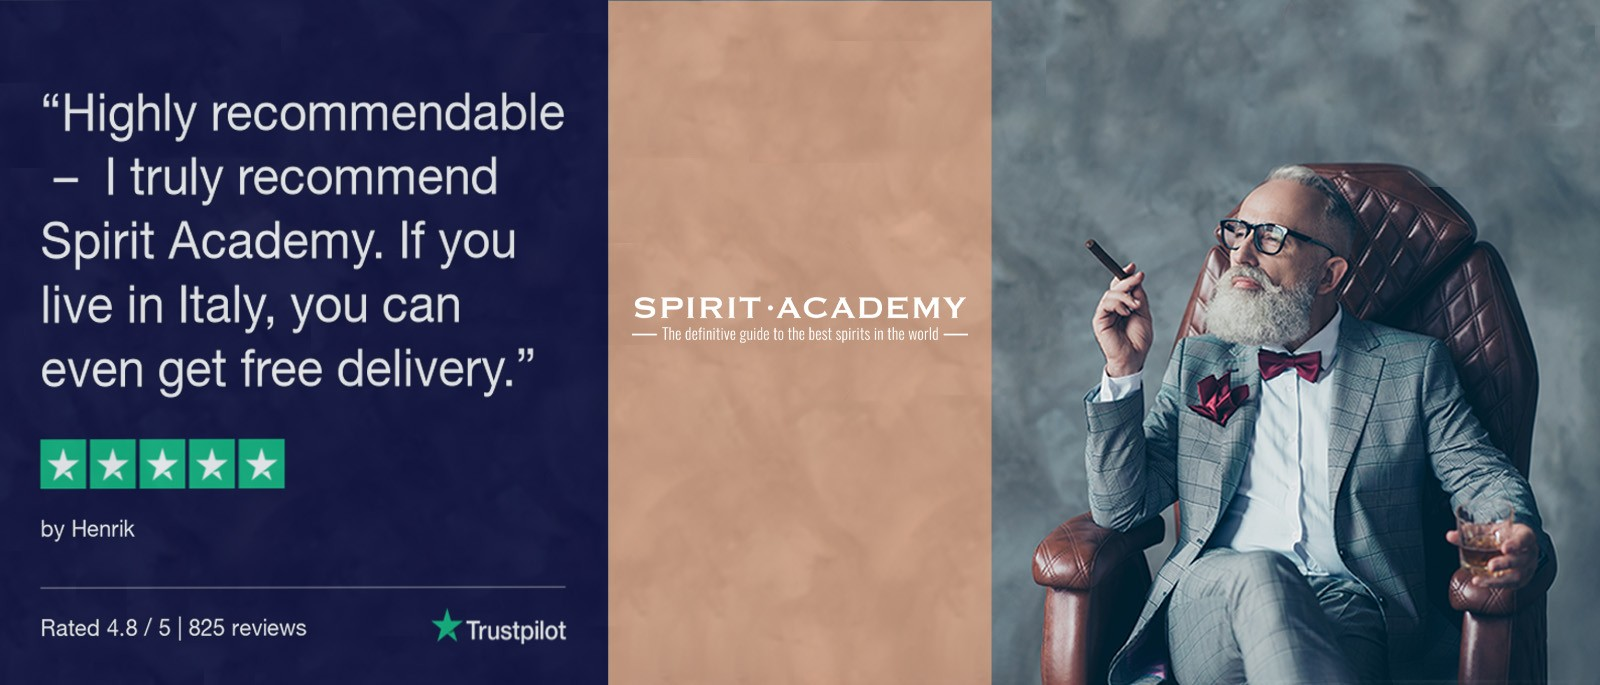 Spirit Academy Homepage ENG